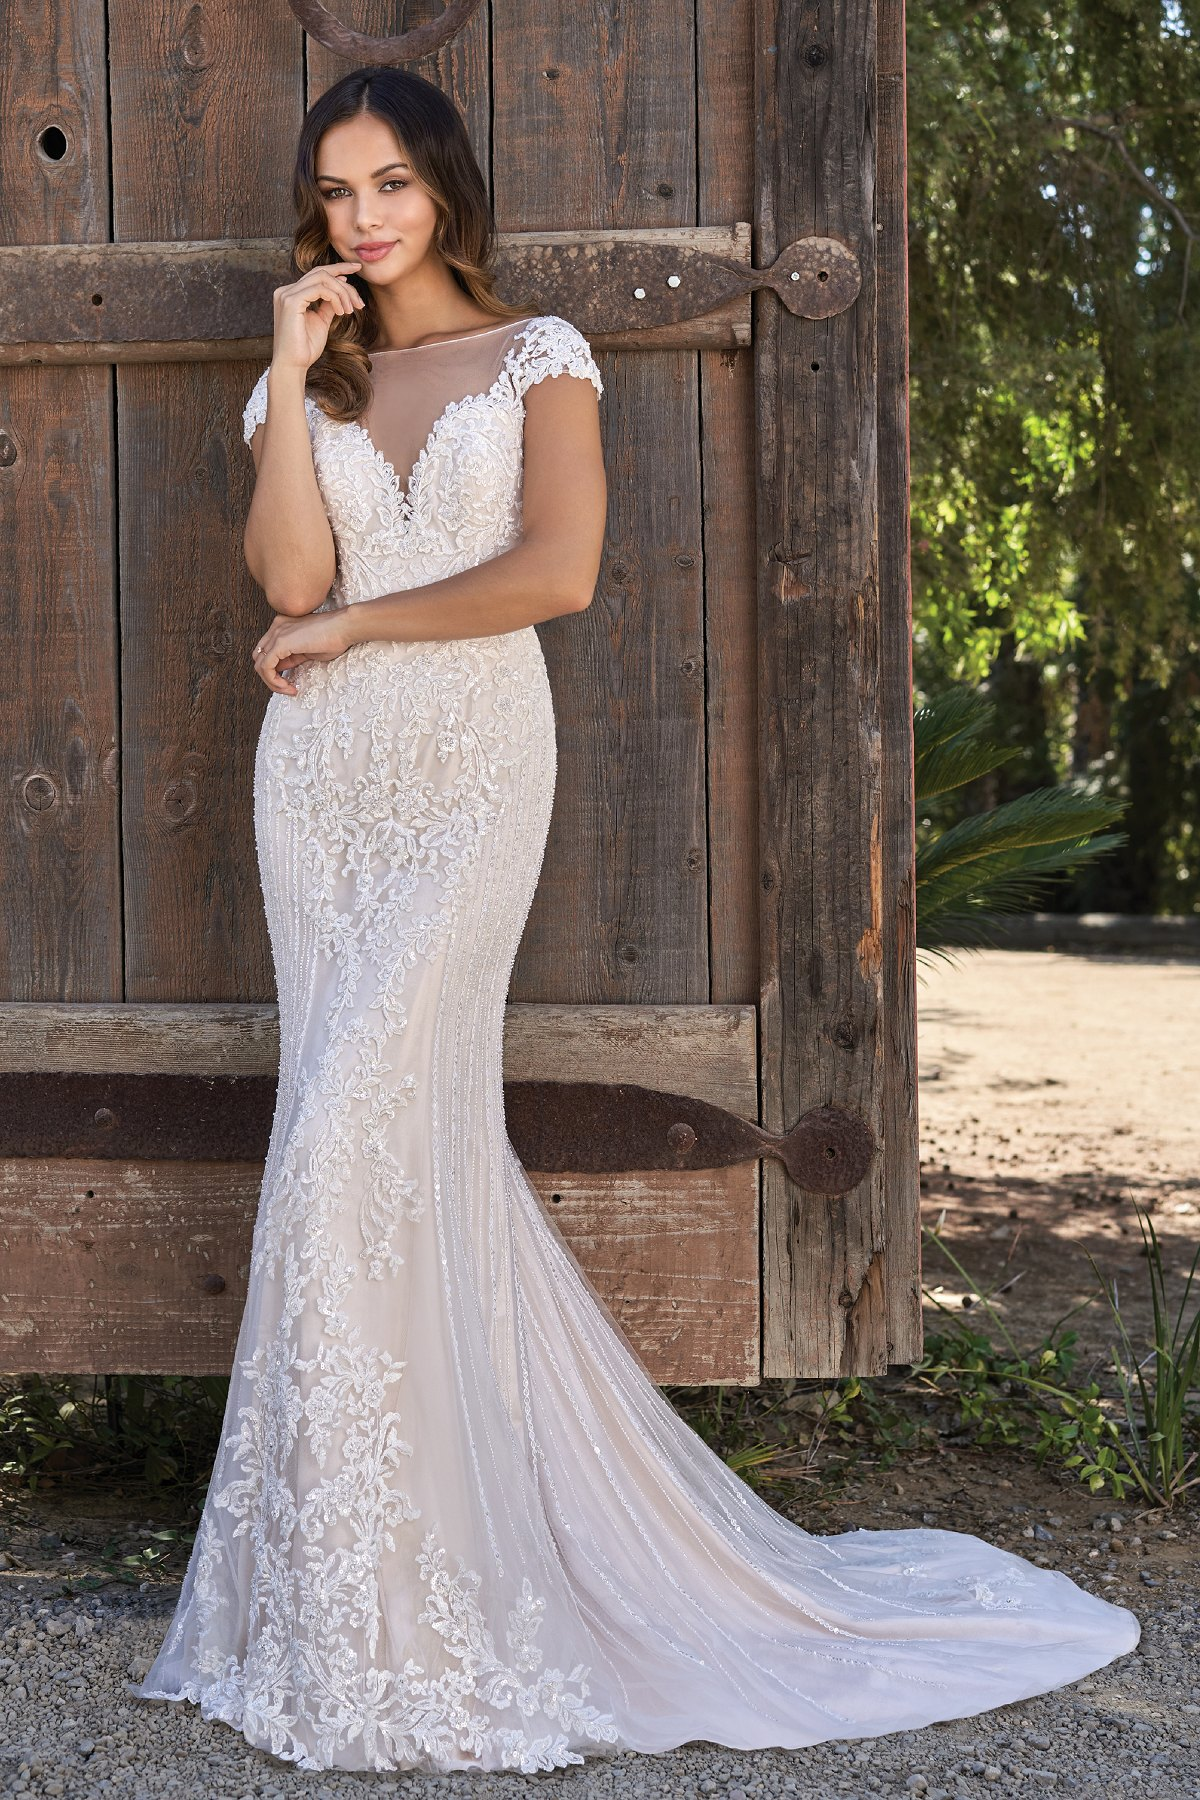 9917e1dc22bf Classic Wedding Gowns for the Over 50 Bride [2019 Edition]